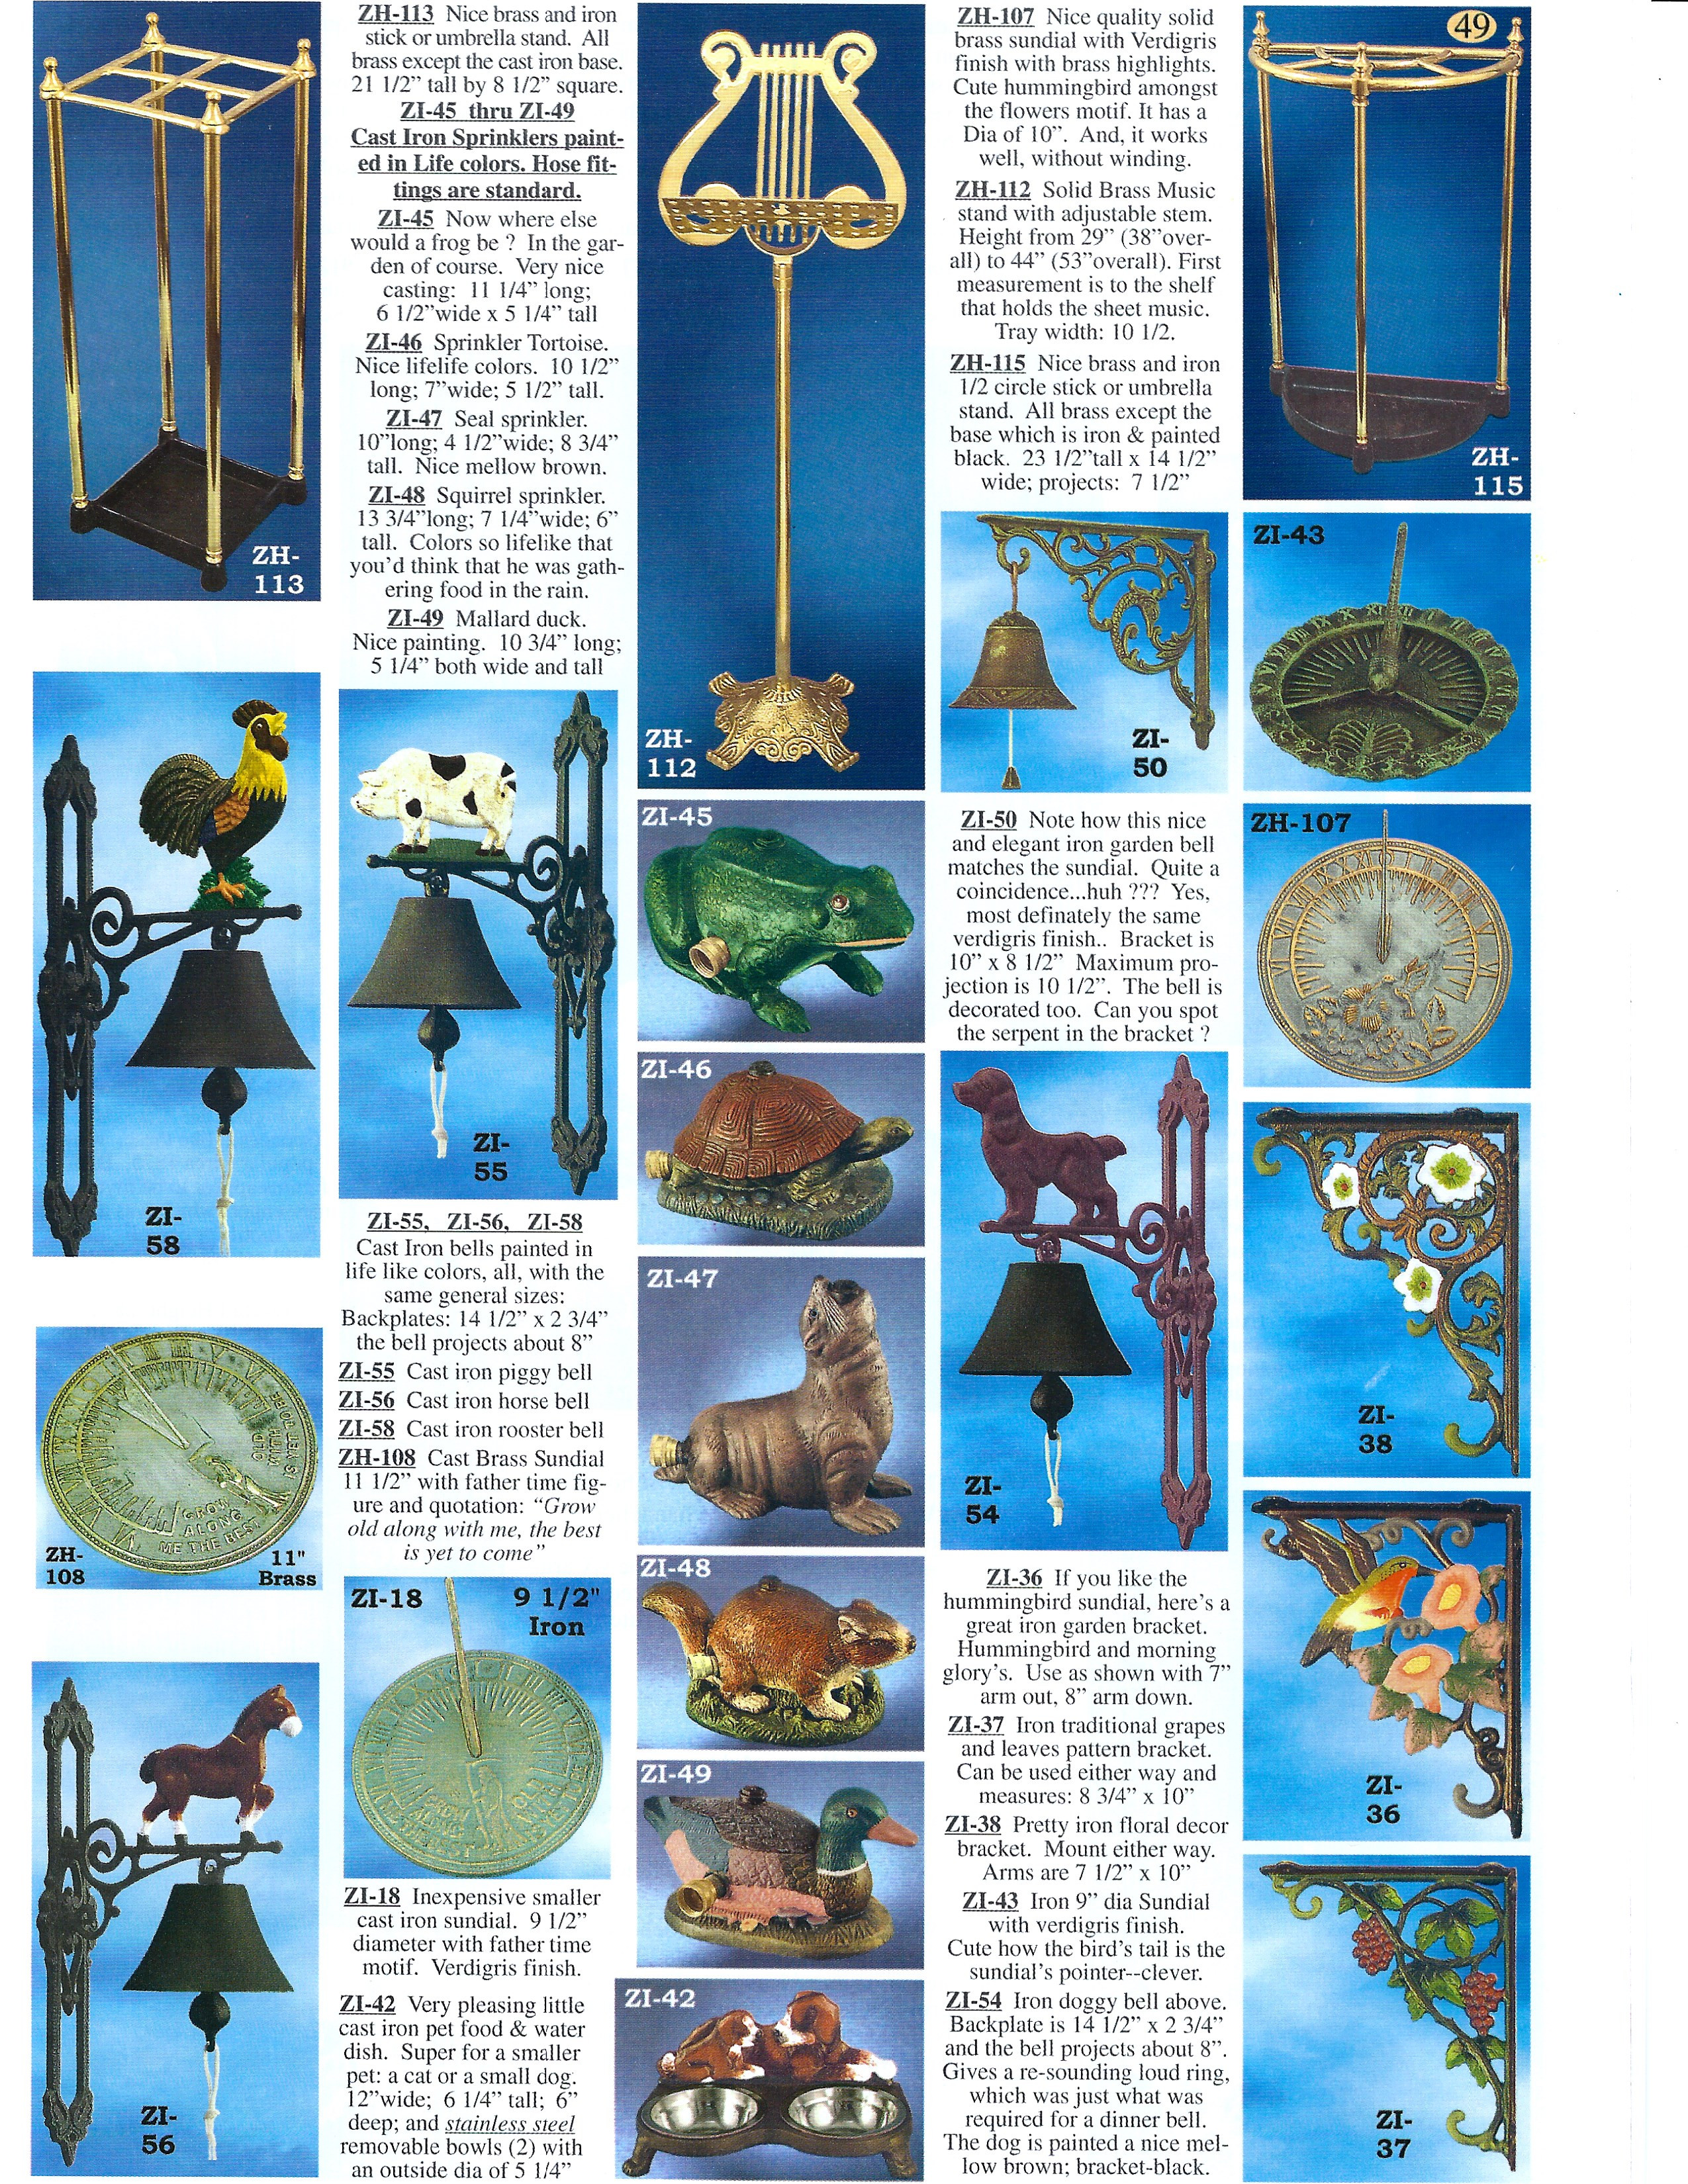 Catalog page 73